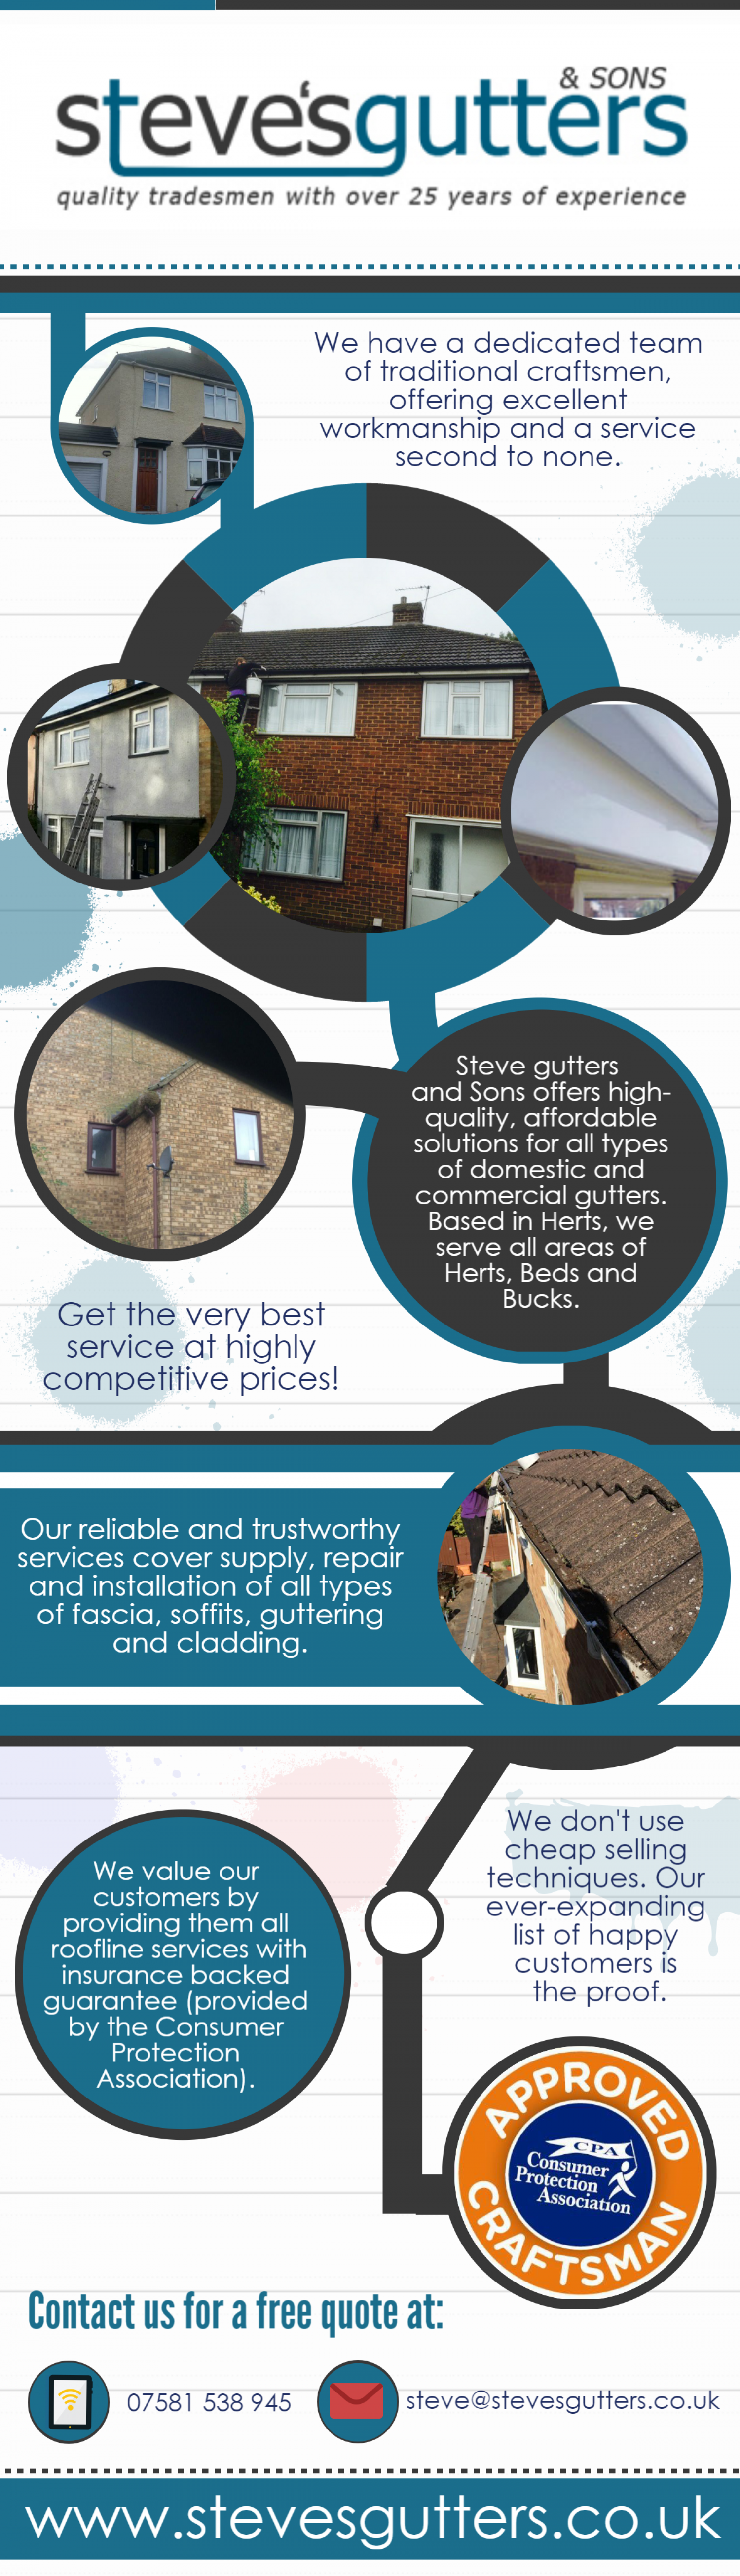 Steve's Gutters quality tradesmen with over 25 years of experience  Infographic